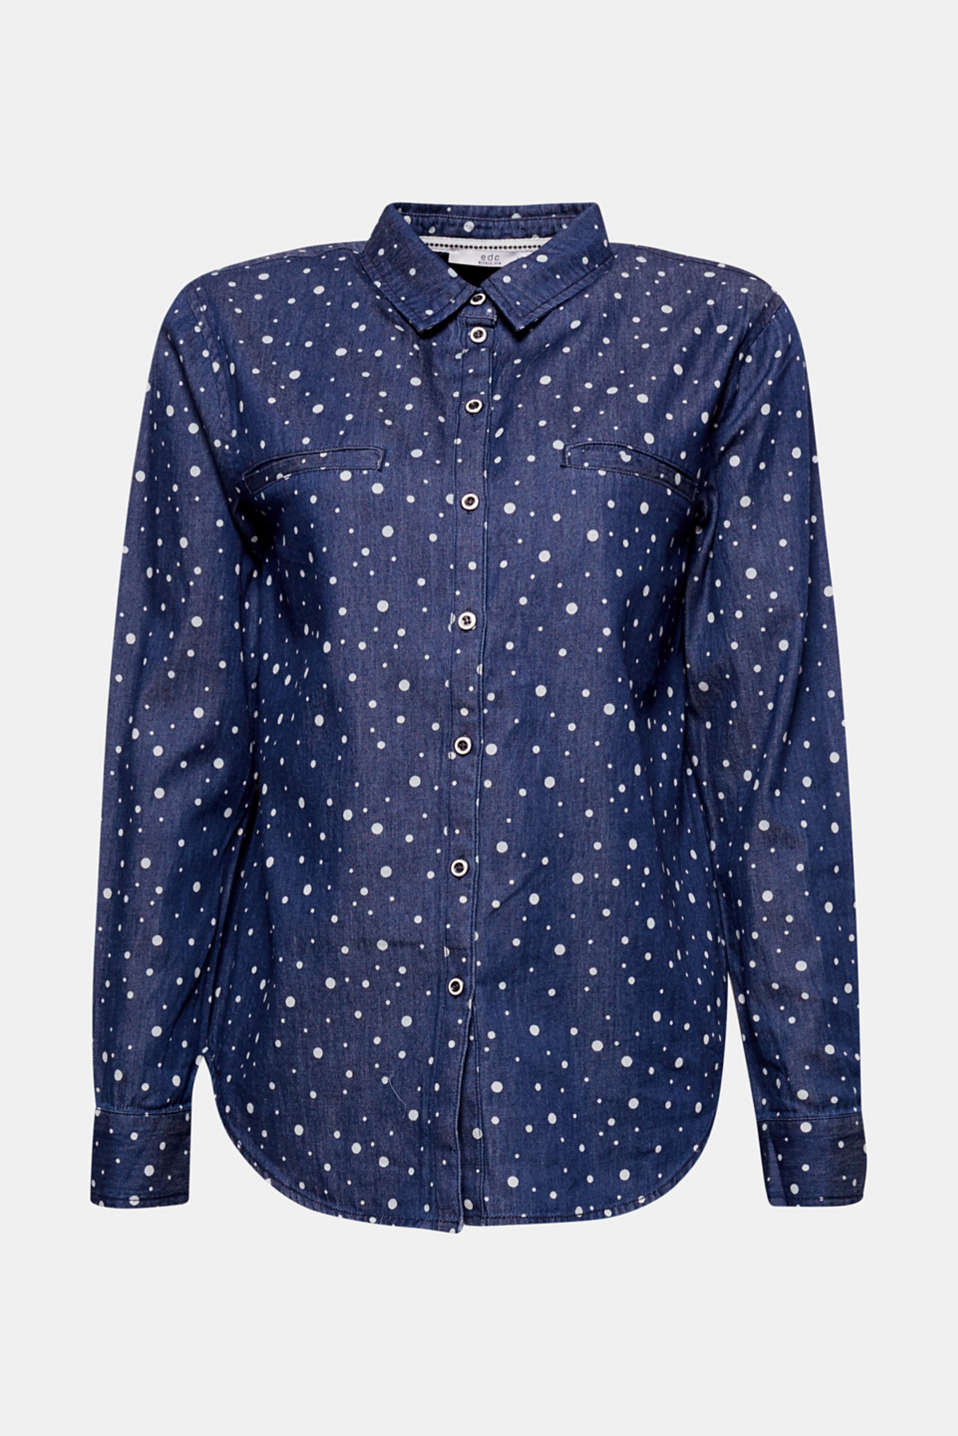 Charming polka dots: shirt blouse in soft cotton denim with an all-over polka dot print